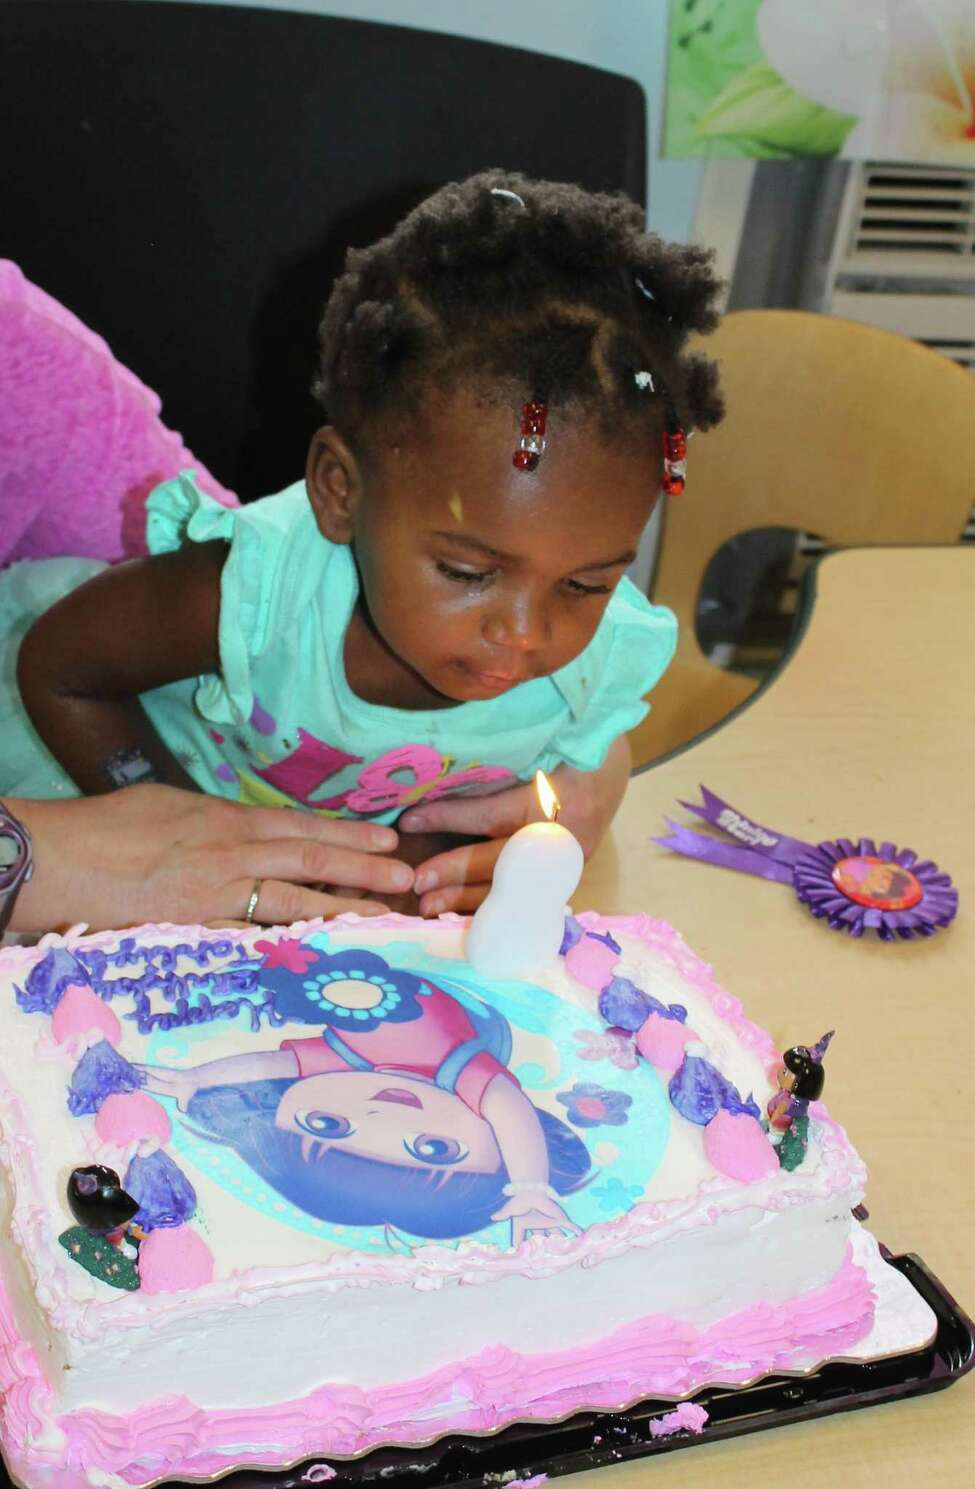 Jazzy Sun Birthdays, a program that throws birthday parties for children in homeless shelters, provides gifts and a cake for every birthday child. (Jazzy Sun Birthdays)